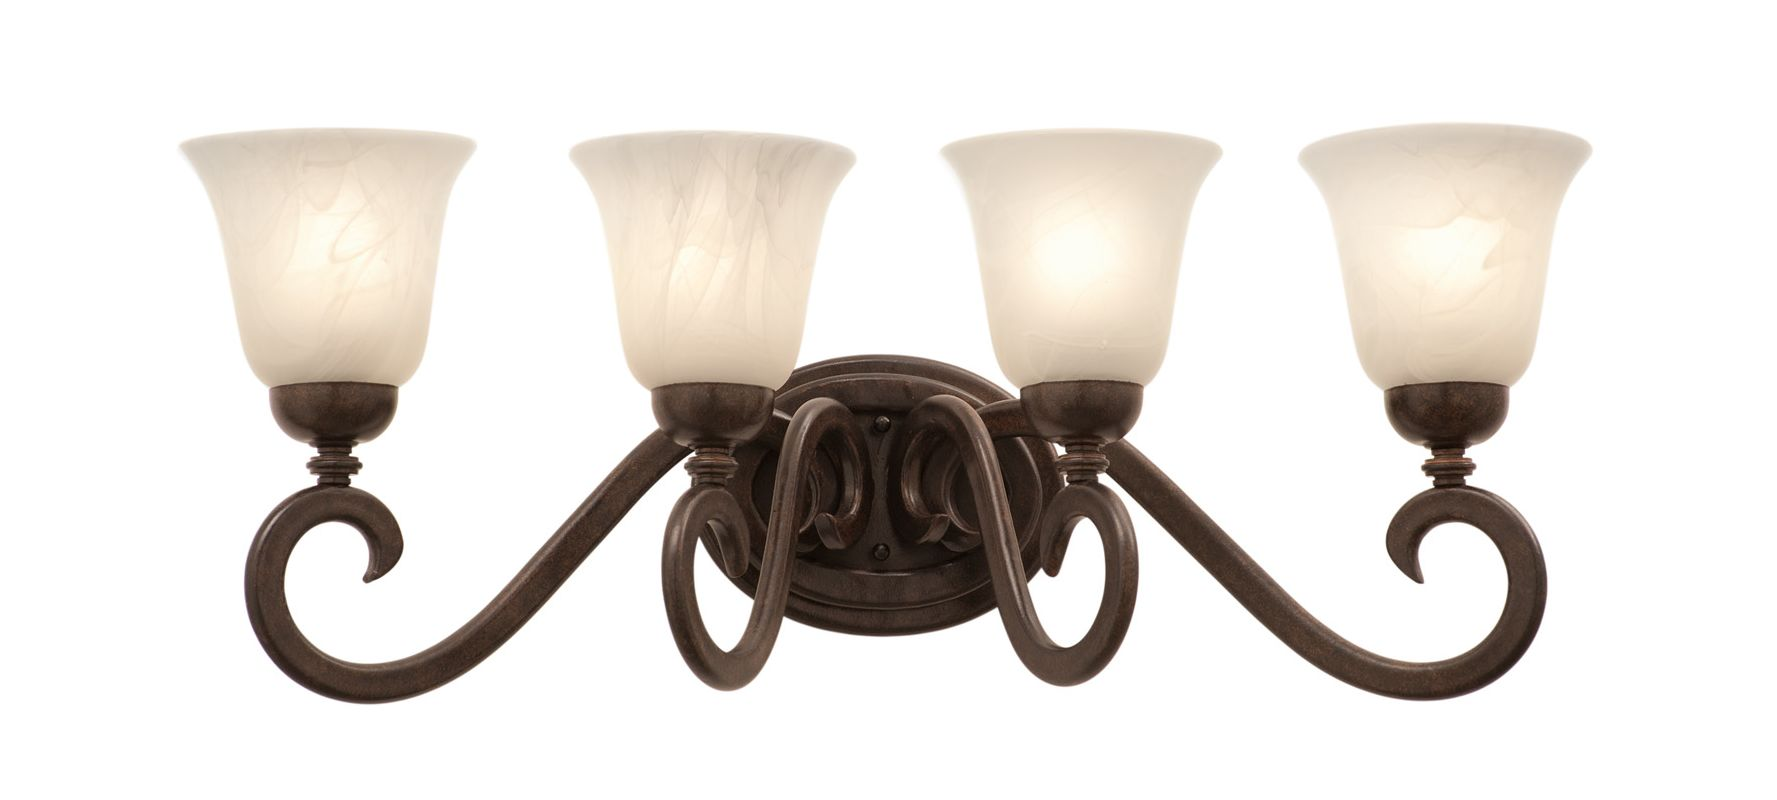 Kalco 3544TO/1219 Santa Barbara 4 Light Bathroom Vanity Light Tortoise Sale $604.00 ITEM: bci2592186 ID#:3544TO/1219 UPC: 720062194393 :